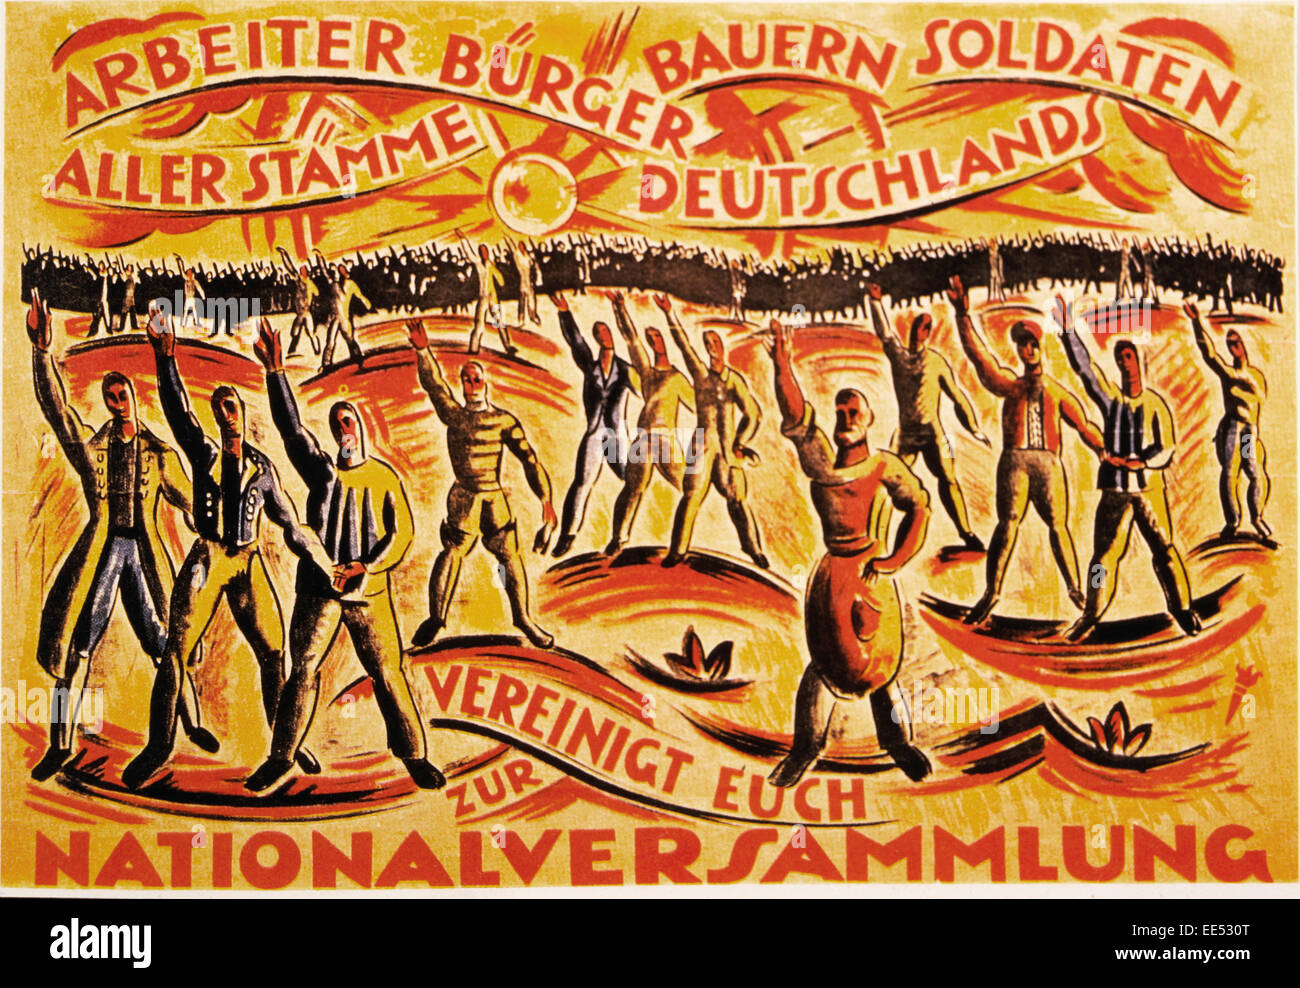 Poster for National Assembly Elections, Urging Unity of Workers, Citizens, Farmers and Soldiers in Support of the - Stock Image